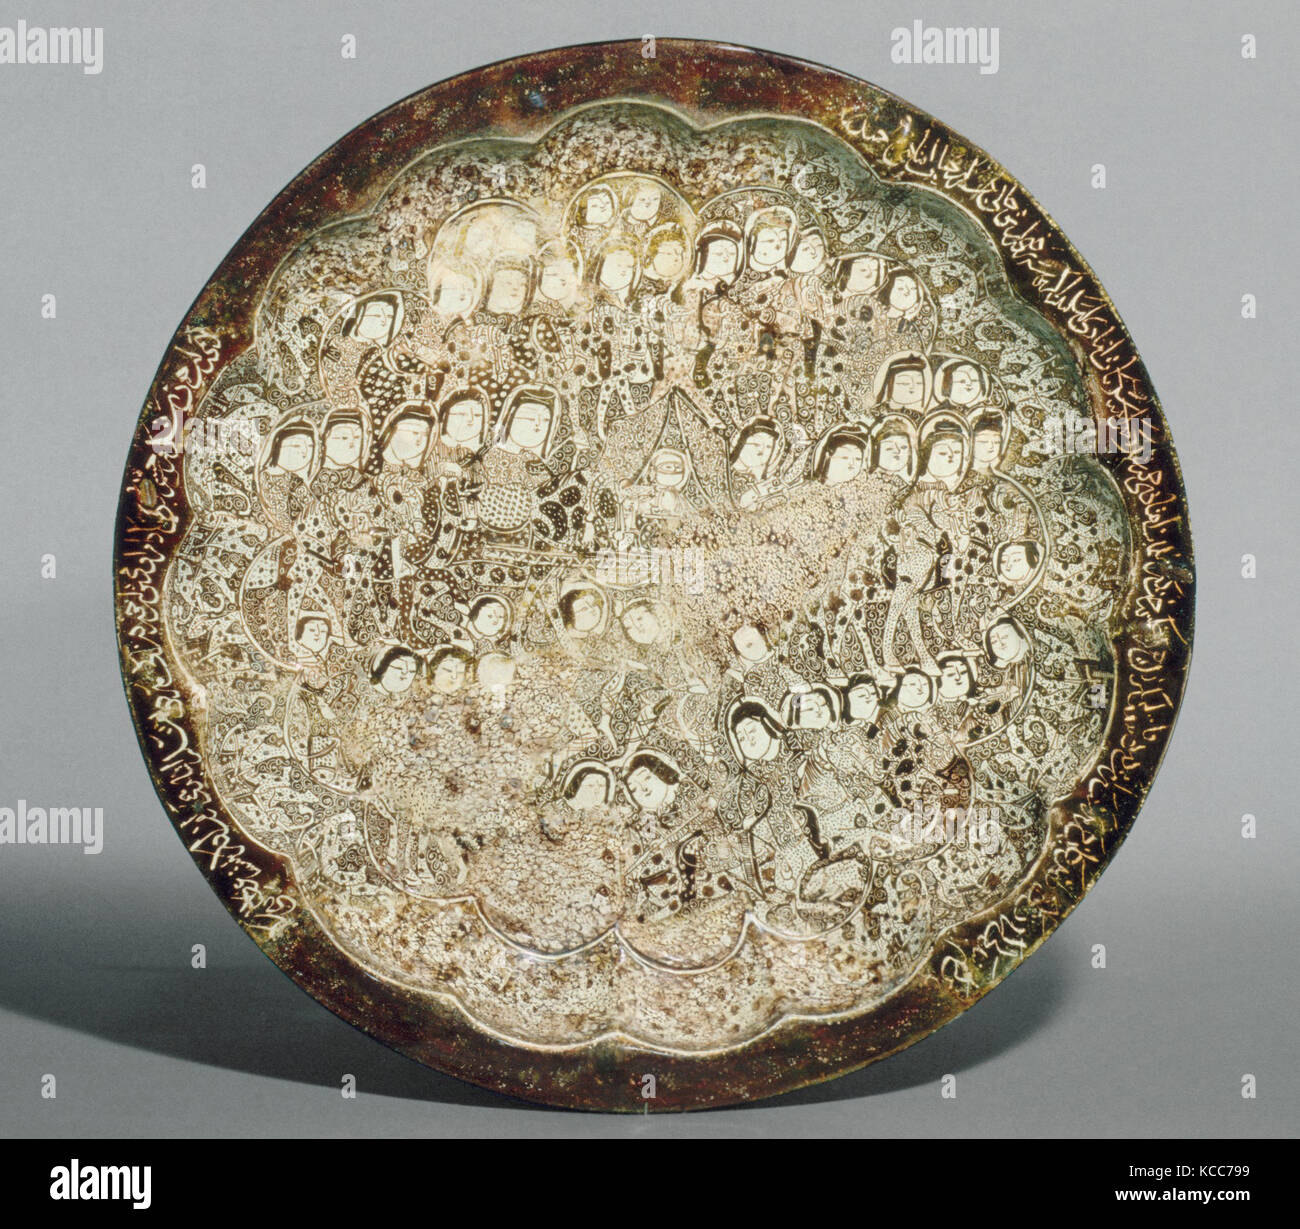 Dish depicting a Wedding Procession, first quarter 13th century - Stock Image